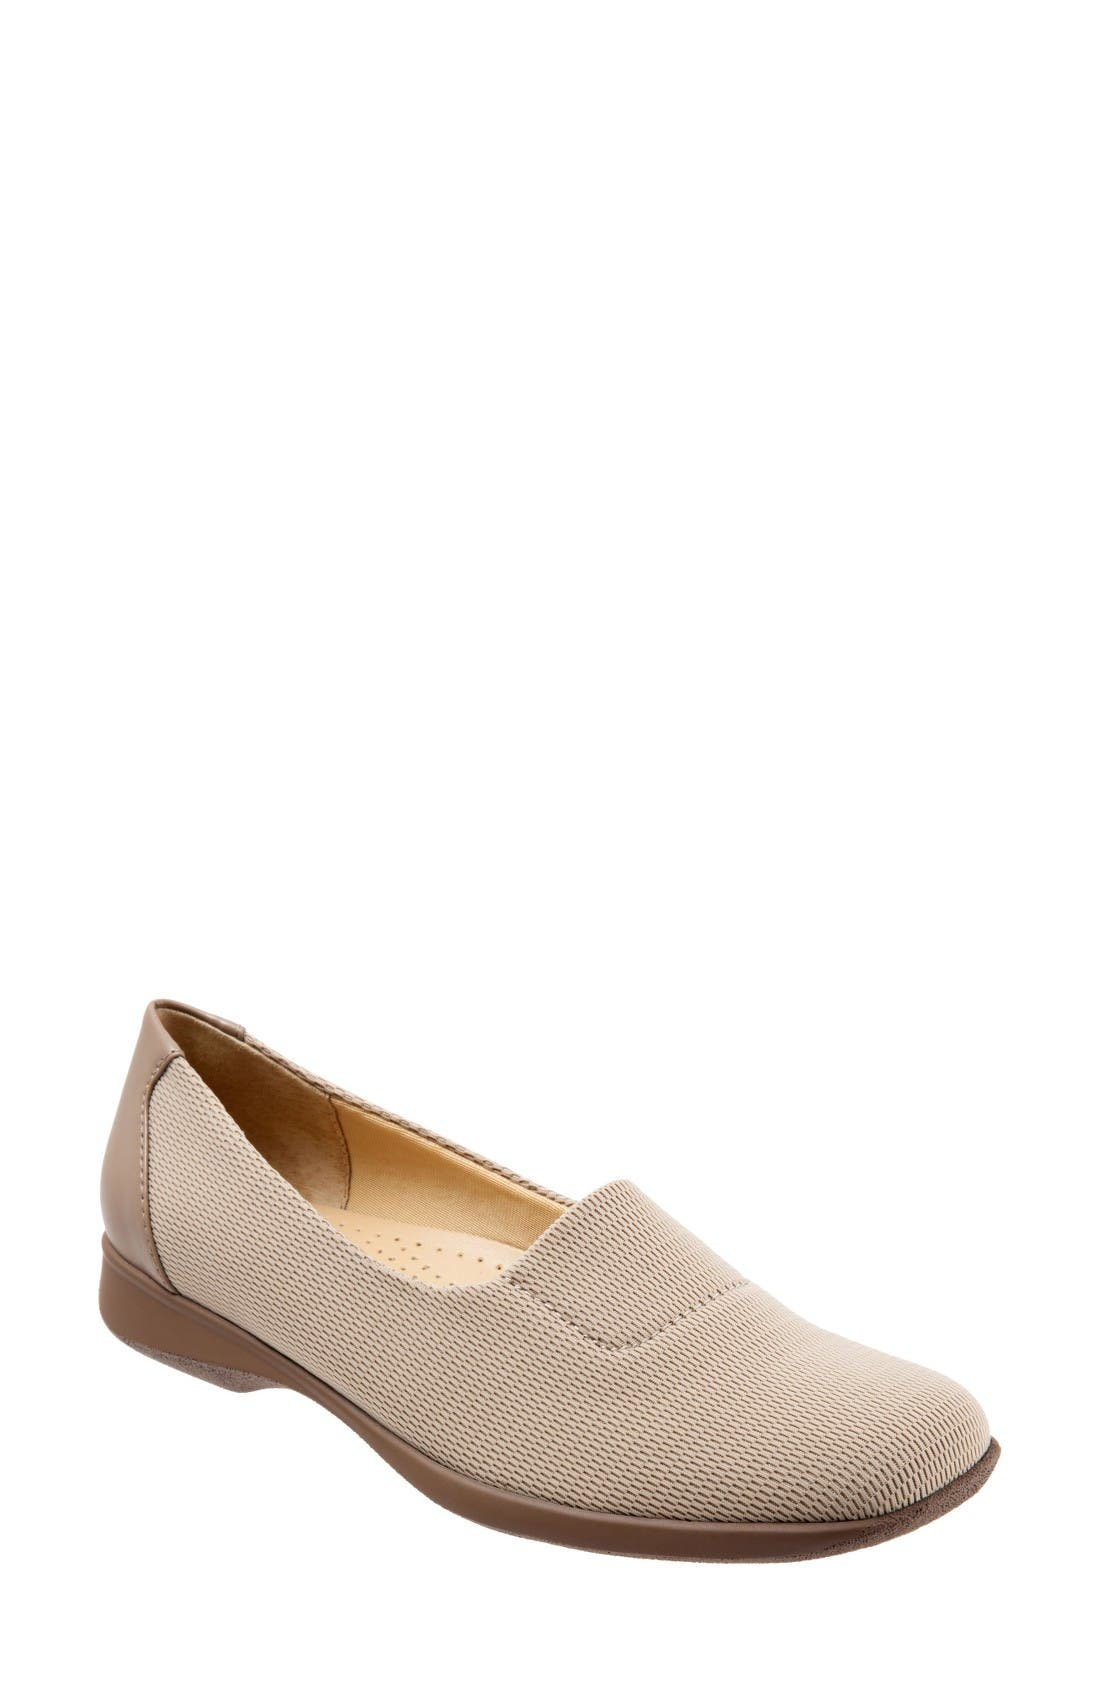 TROTTERS 'Signature Jake' Slip On